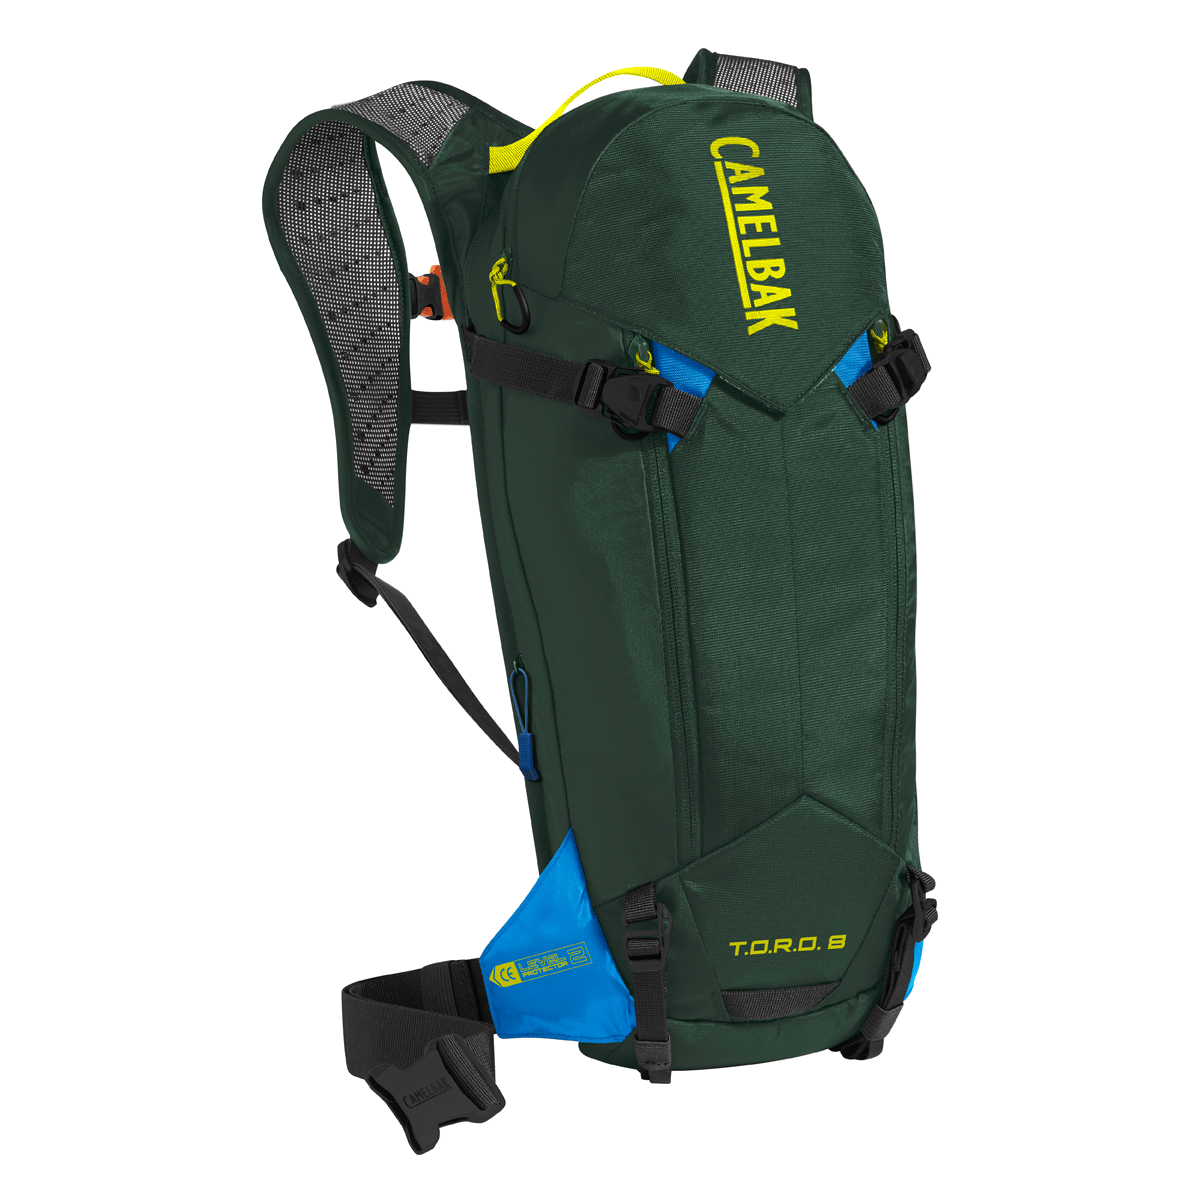 Camelbak Accessories > Bags & Seatpacks Deep Forest / Brilliant Blue CAMELBAK TORO PROTECTOR 8 DRY HYDRATION PACK (2019)